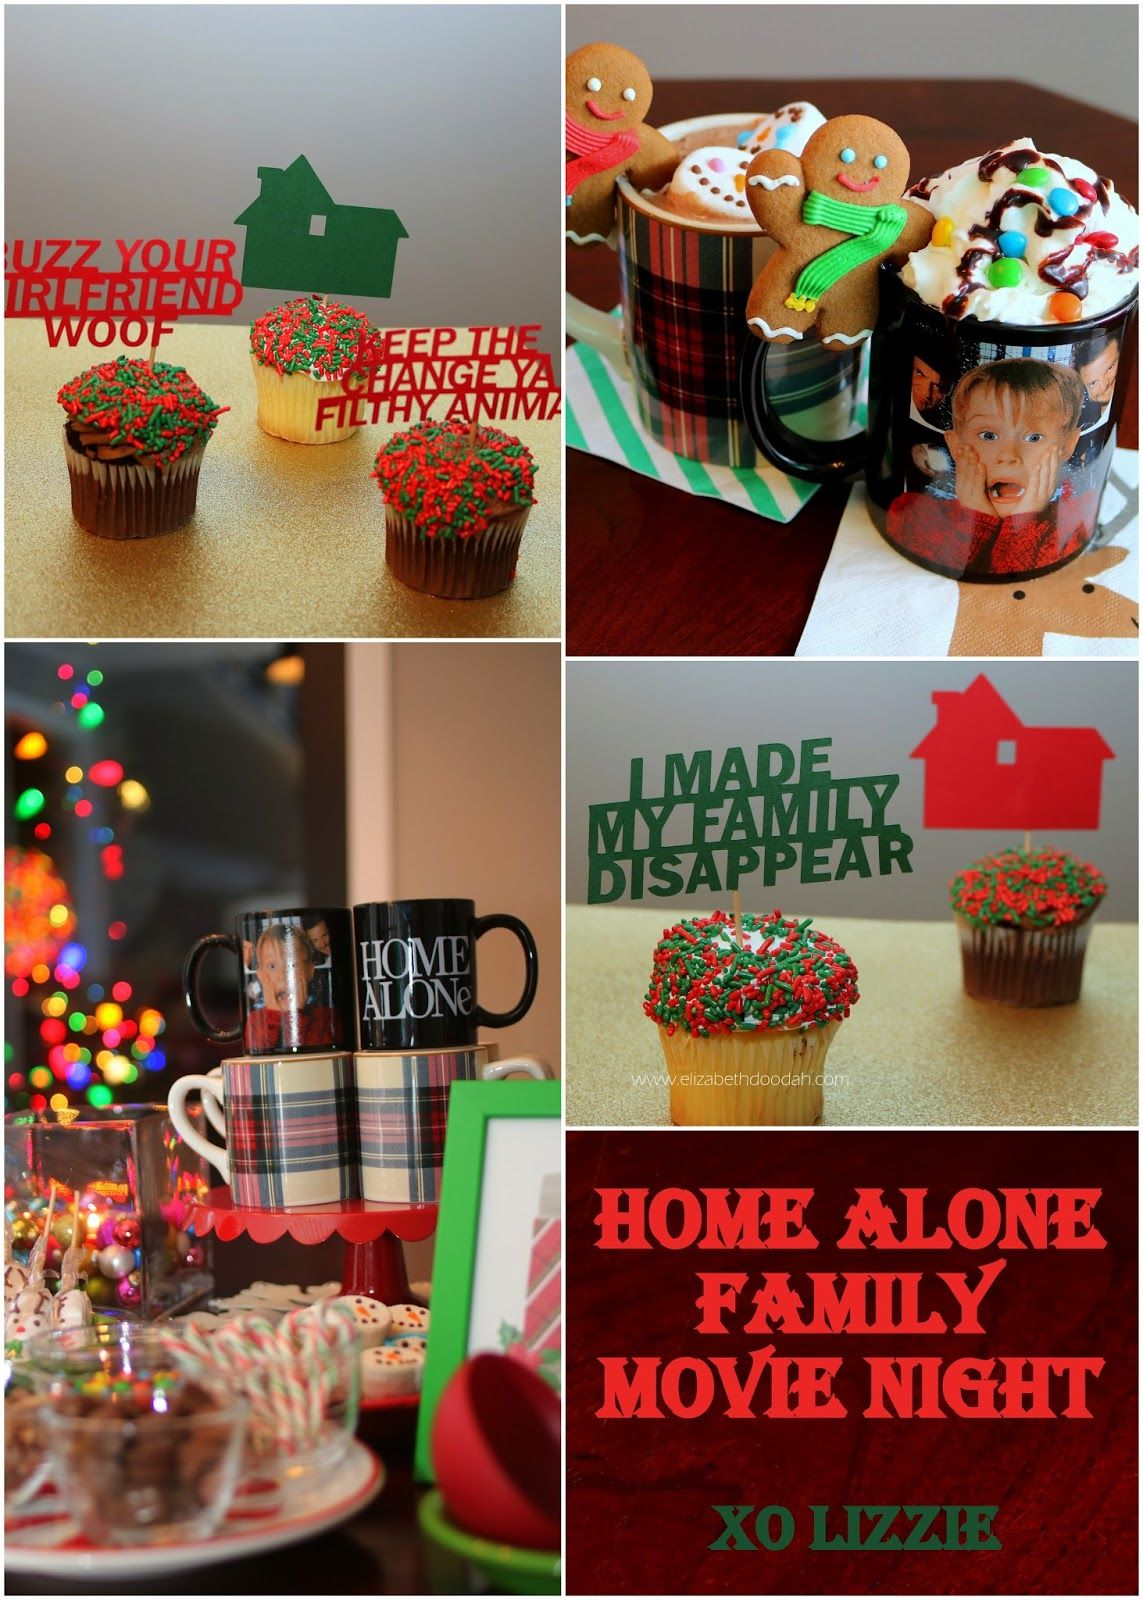 Home Alone Party Christmas Movie Night Home Alone Christmas Movie Night Theme